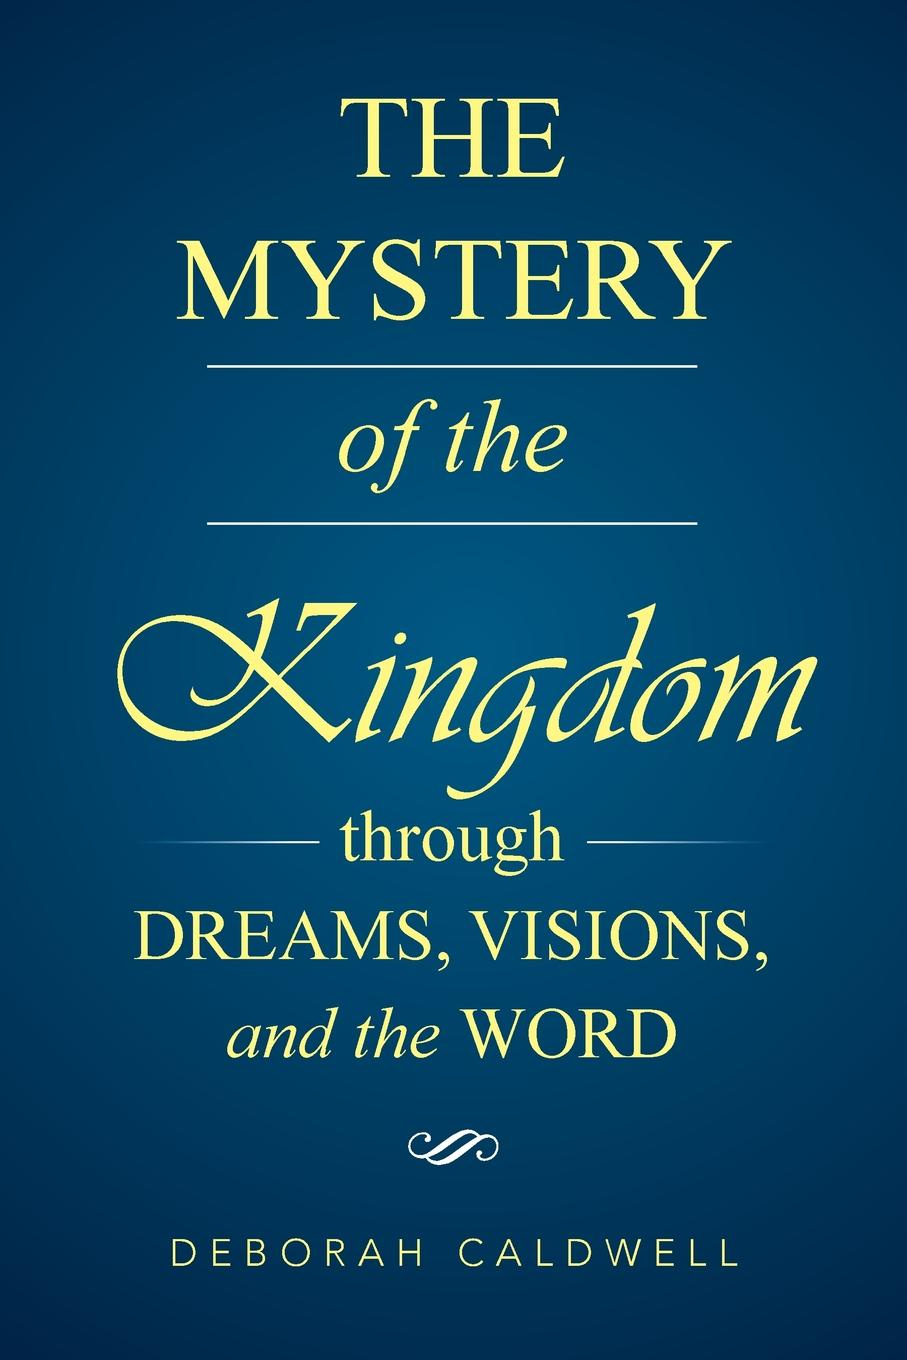 Deborah Caldwell The Mystery of the Kingdom Through Dreams, Visions, and the Word dwight edward knight lessons through the word instructors edition